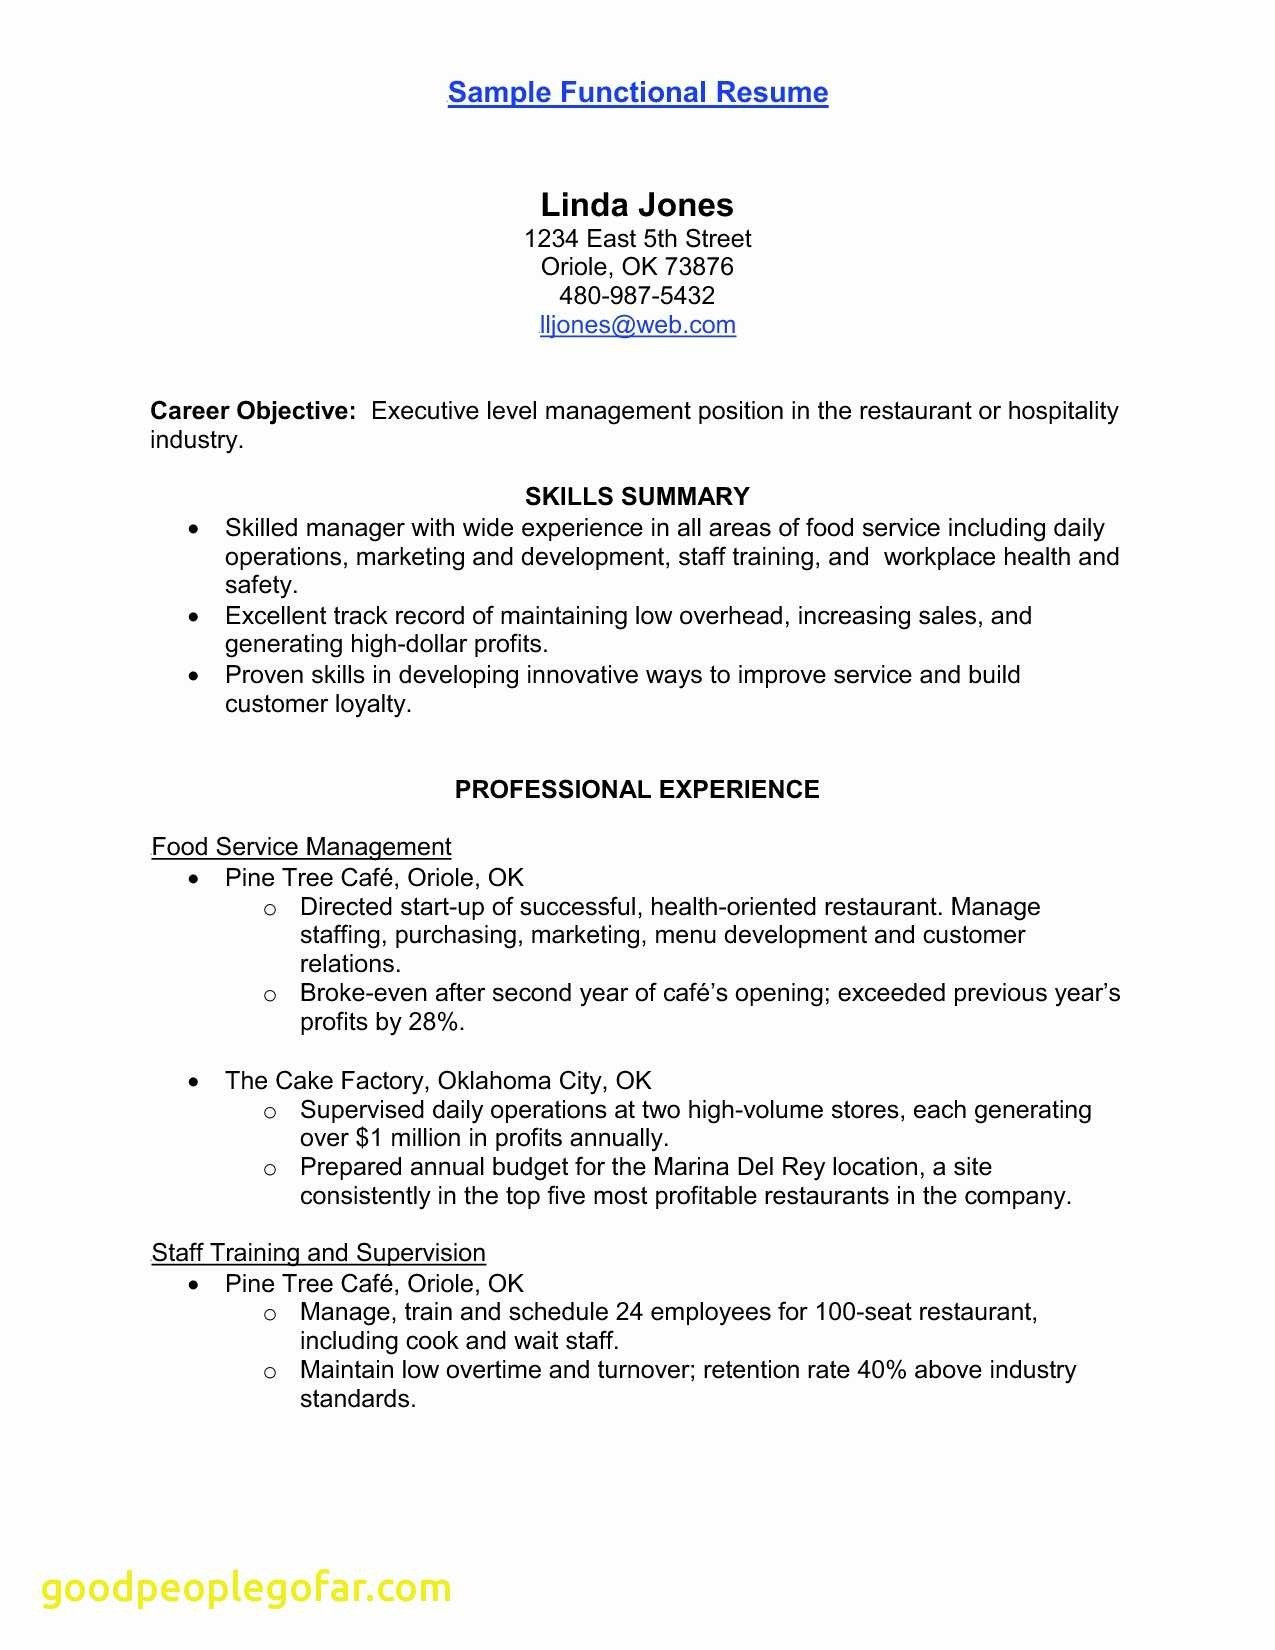 Electrical Engineer Entry Level Resume - Electrical Engineer Resume Ressume Template Lovely Type Resume